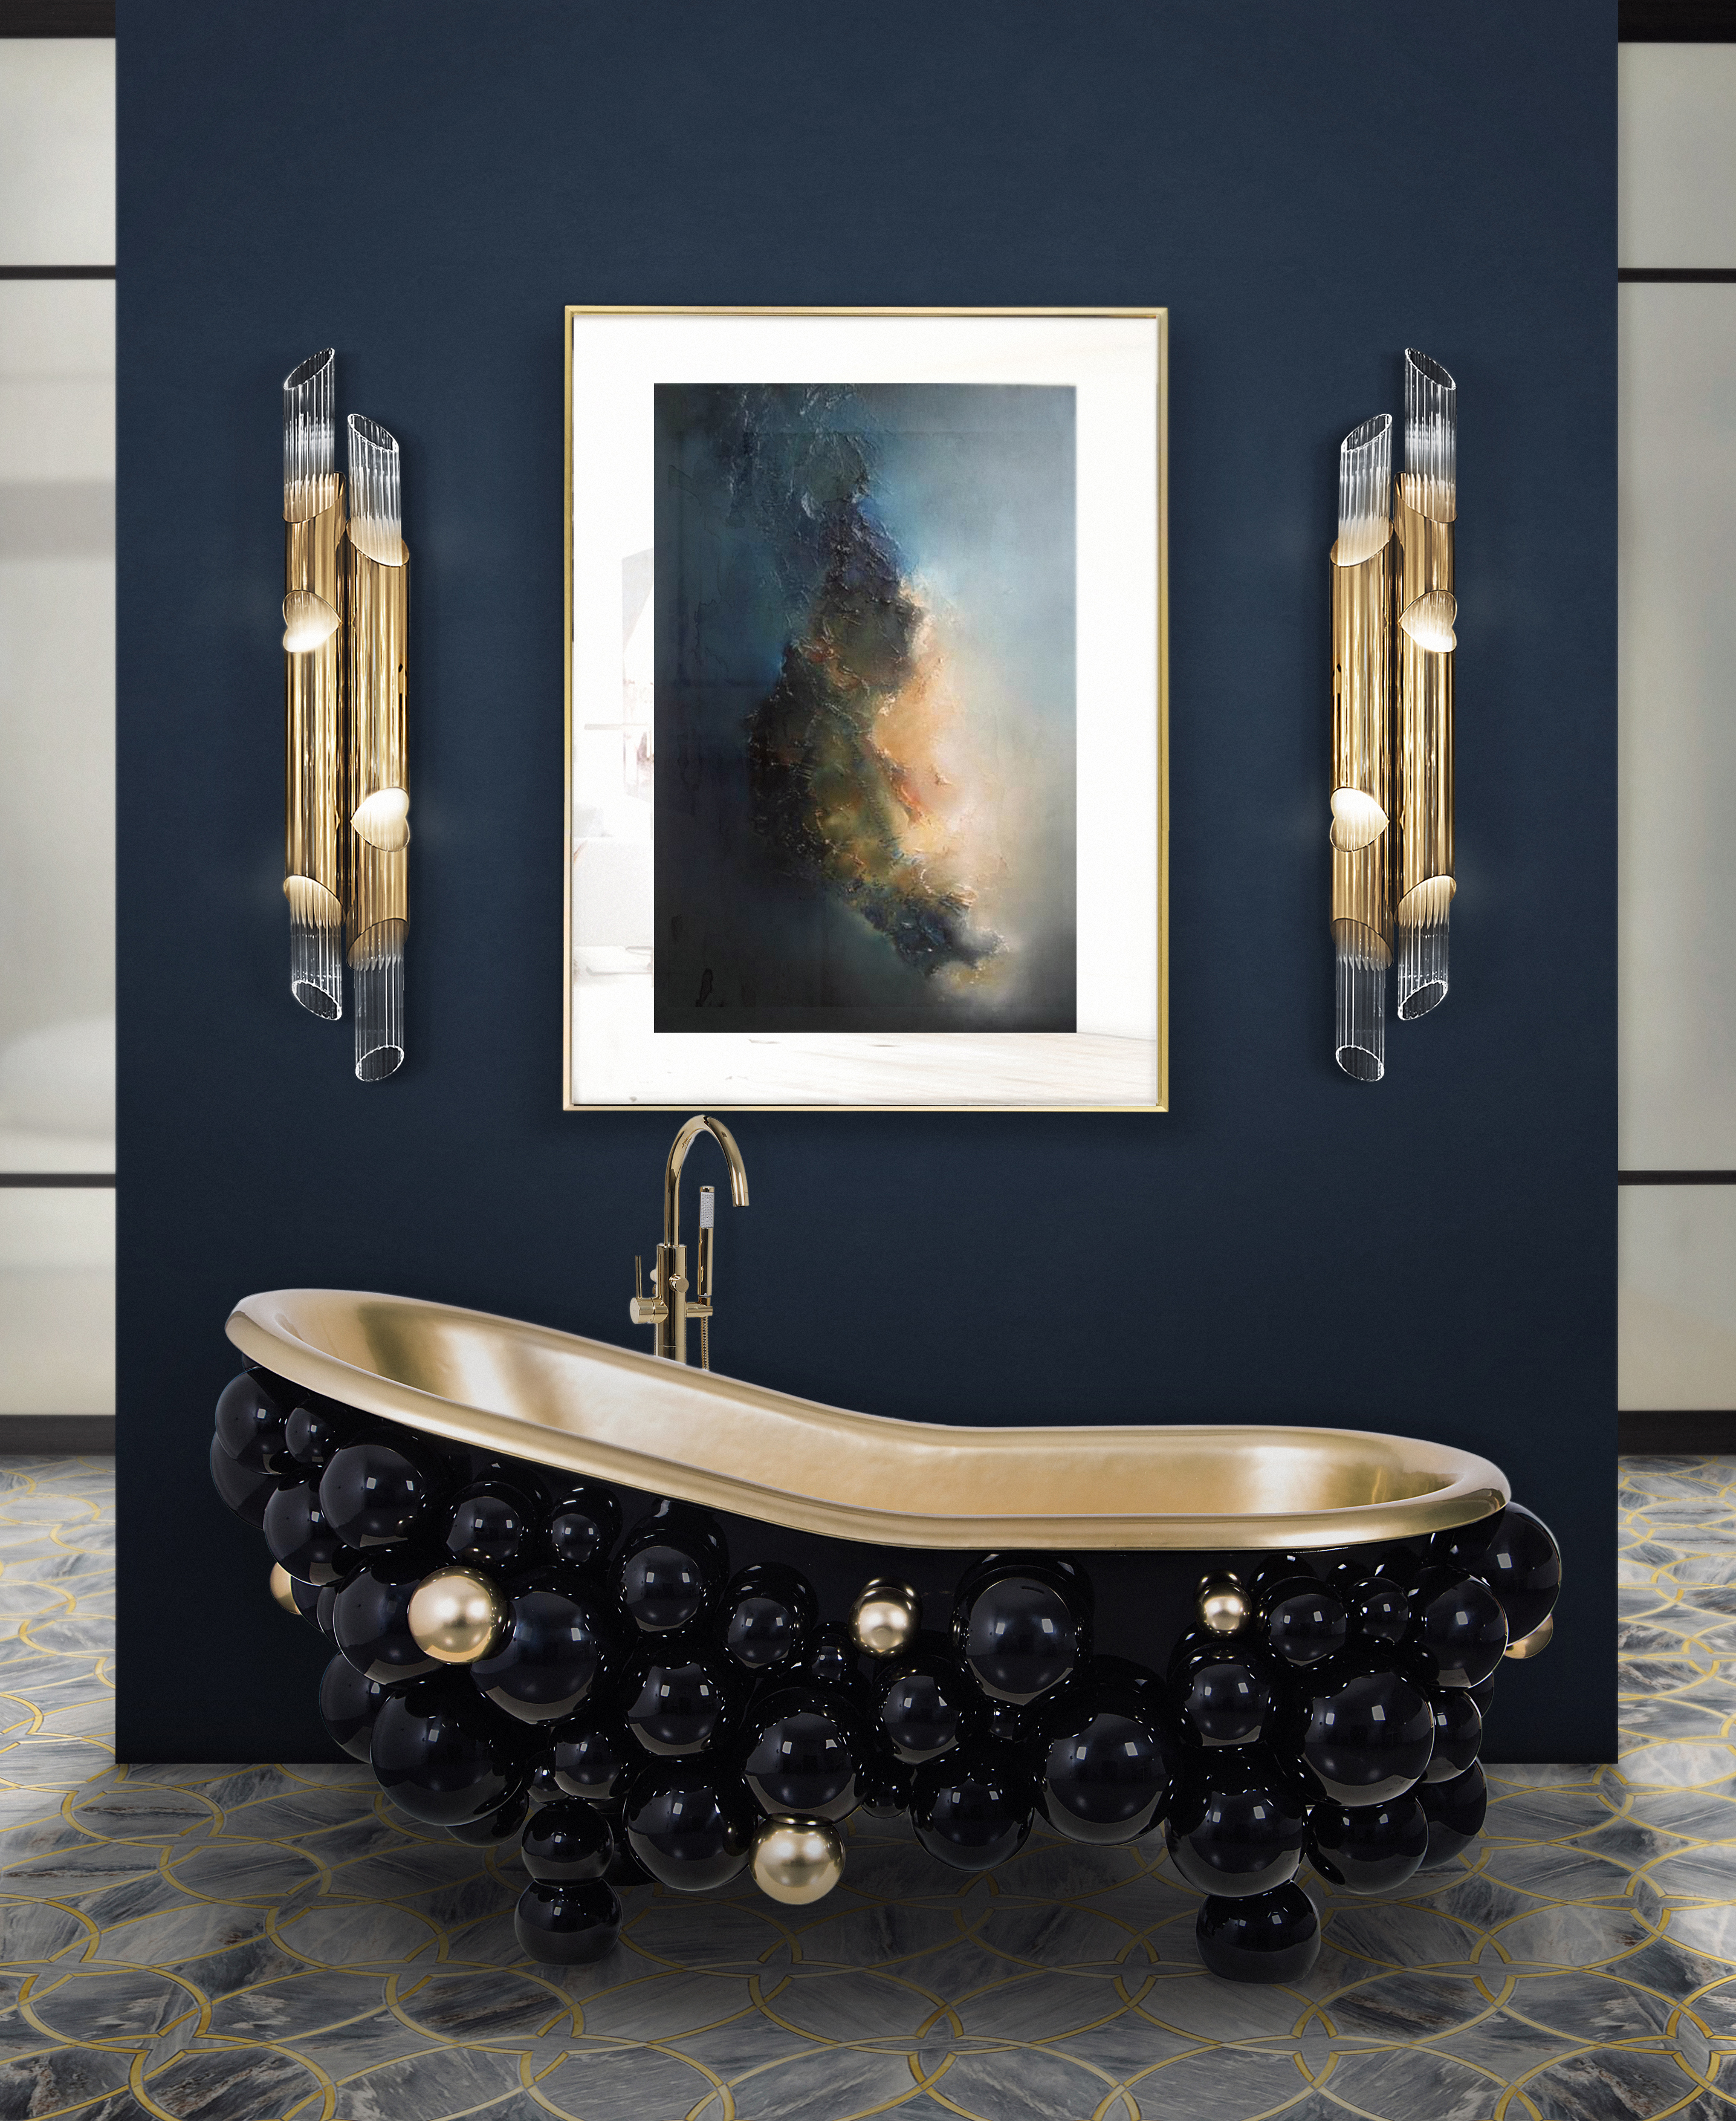 Hot Bathroom Colors 2017: Crisp, Cool Blues, Hot Reds, You Name It. You Can Be